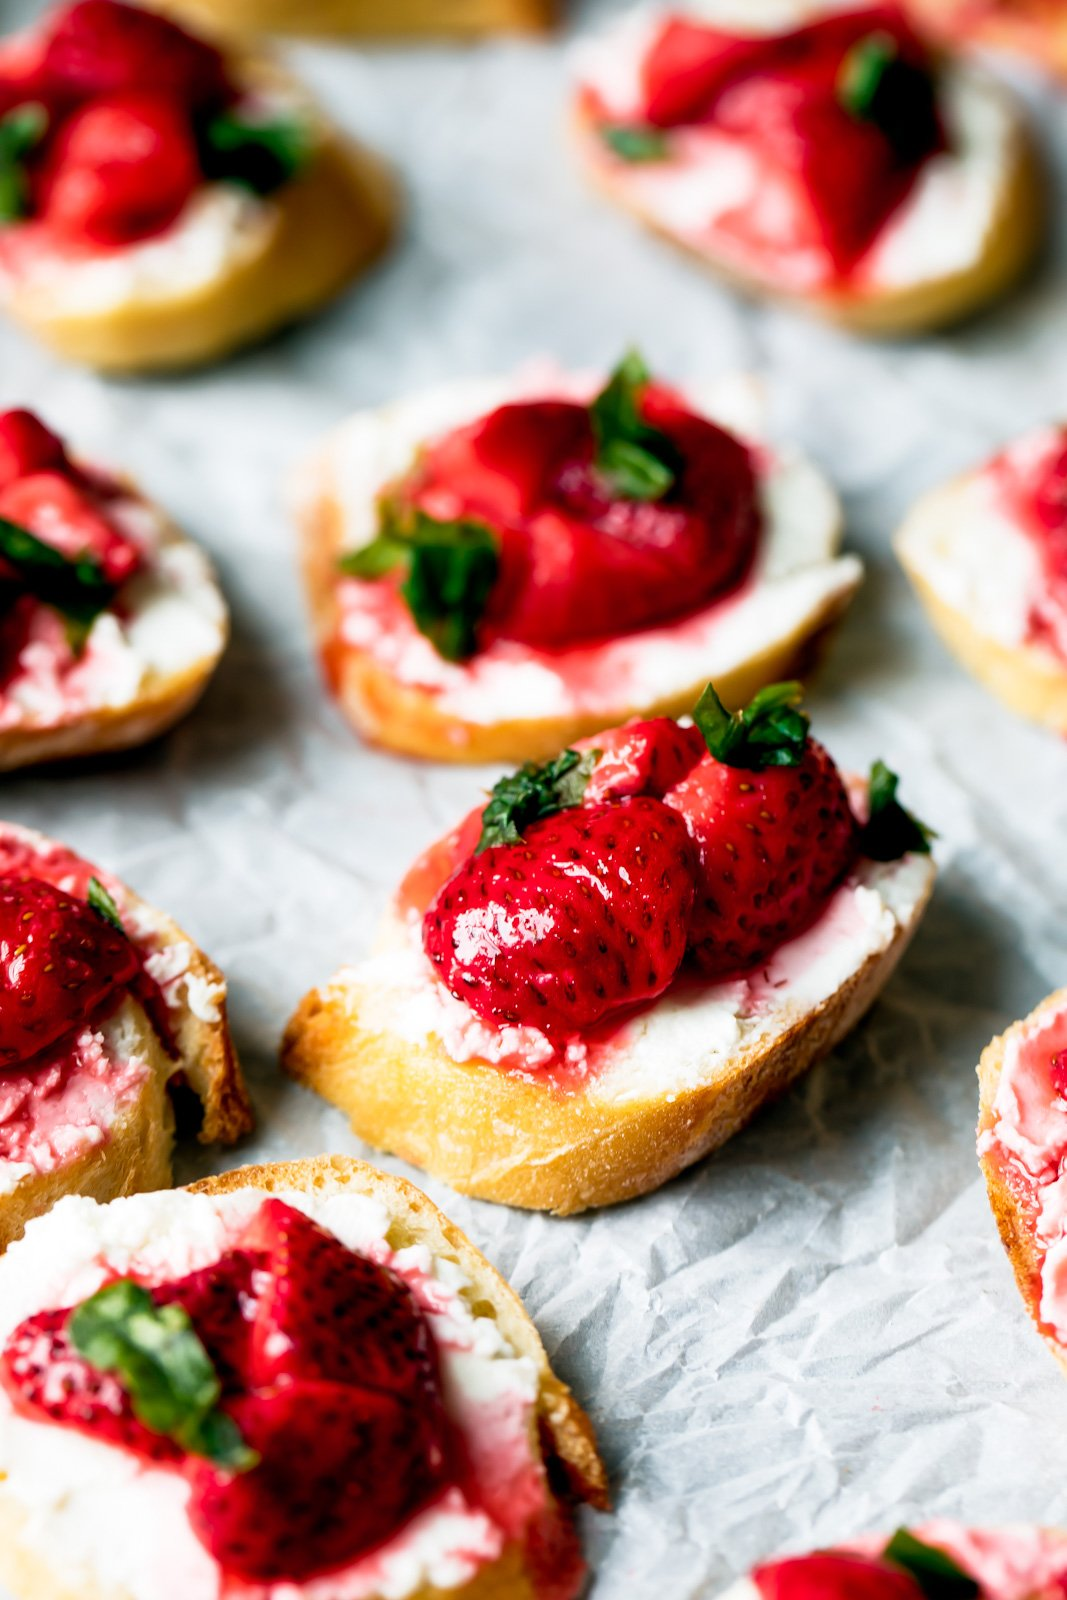 Gorgeous roasted strawberries paired with creamy goat cheese and fresh basil on top of crispy crostini. An incredible summer appetizer that's perfect for entertaining!